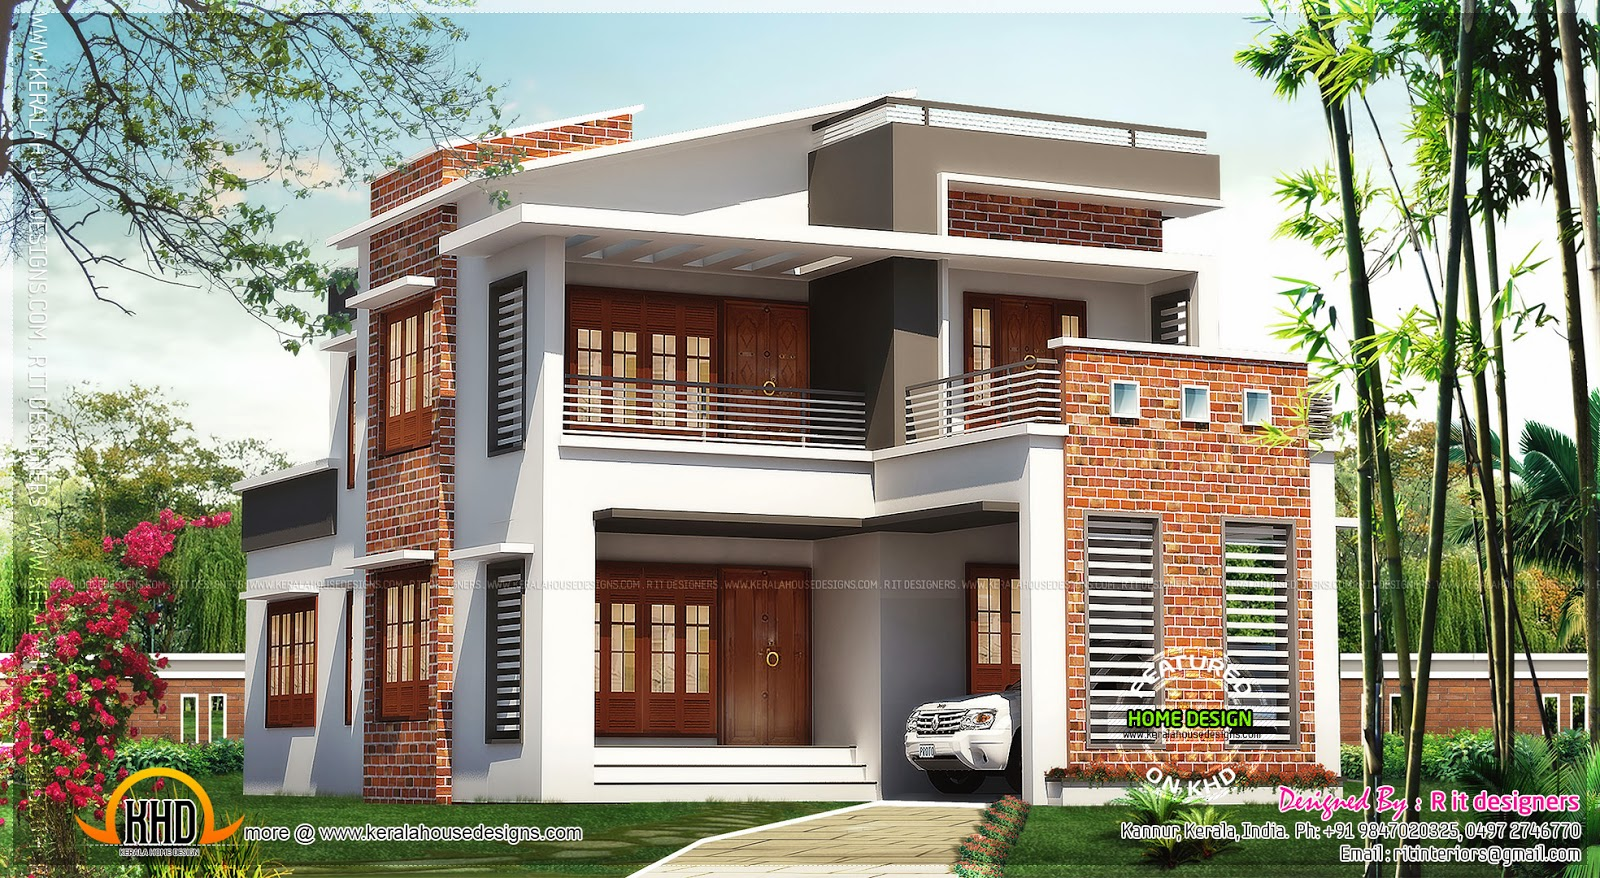 Brick mix house exterior design kerala home design and for Home outside design